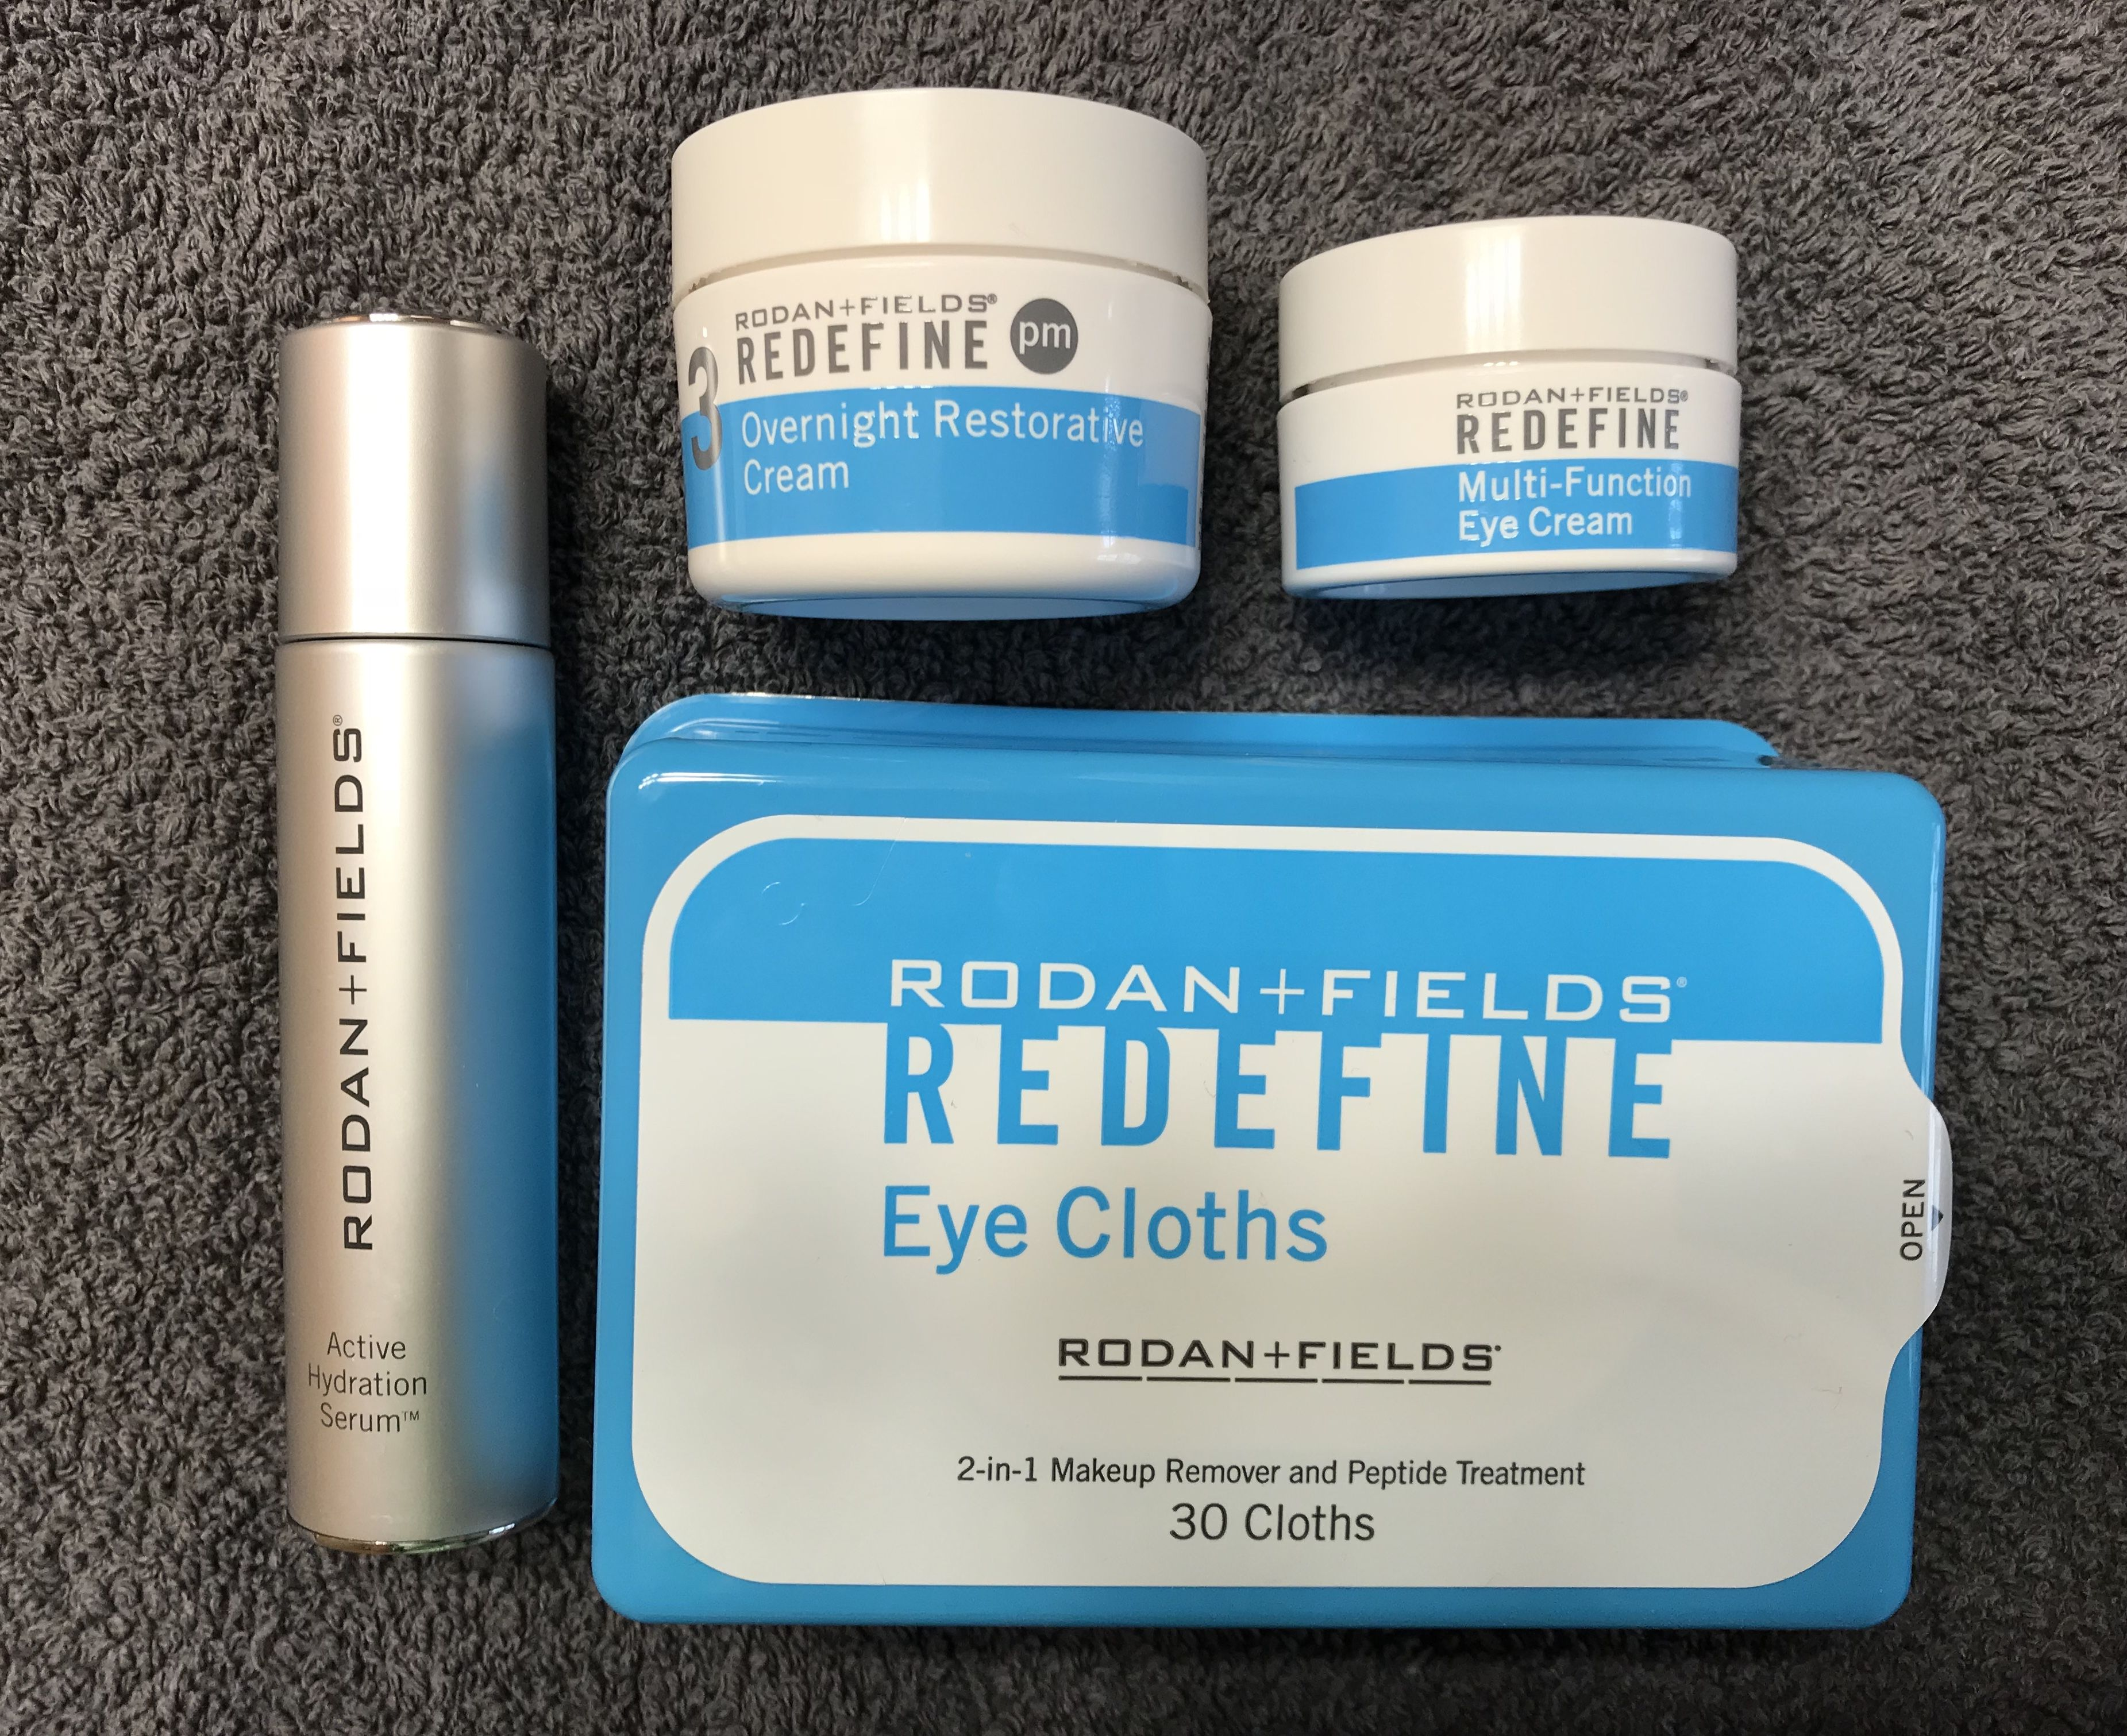 Pin by Jenerator5000 on Rodan + Fields Peptide treatment